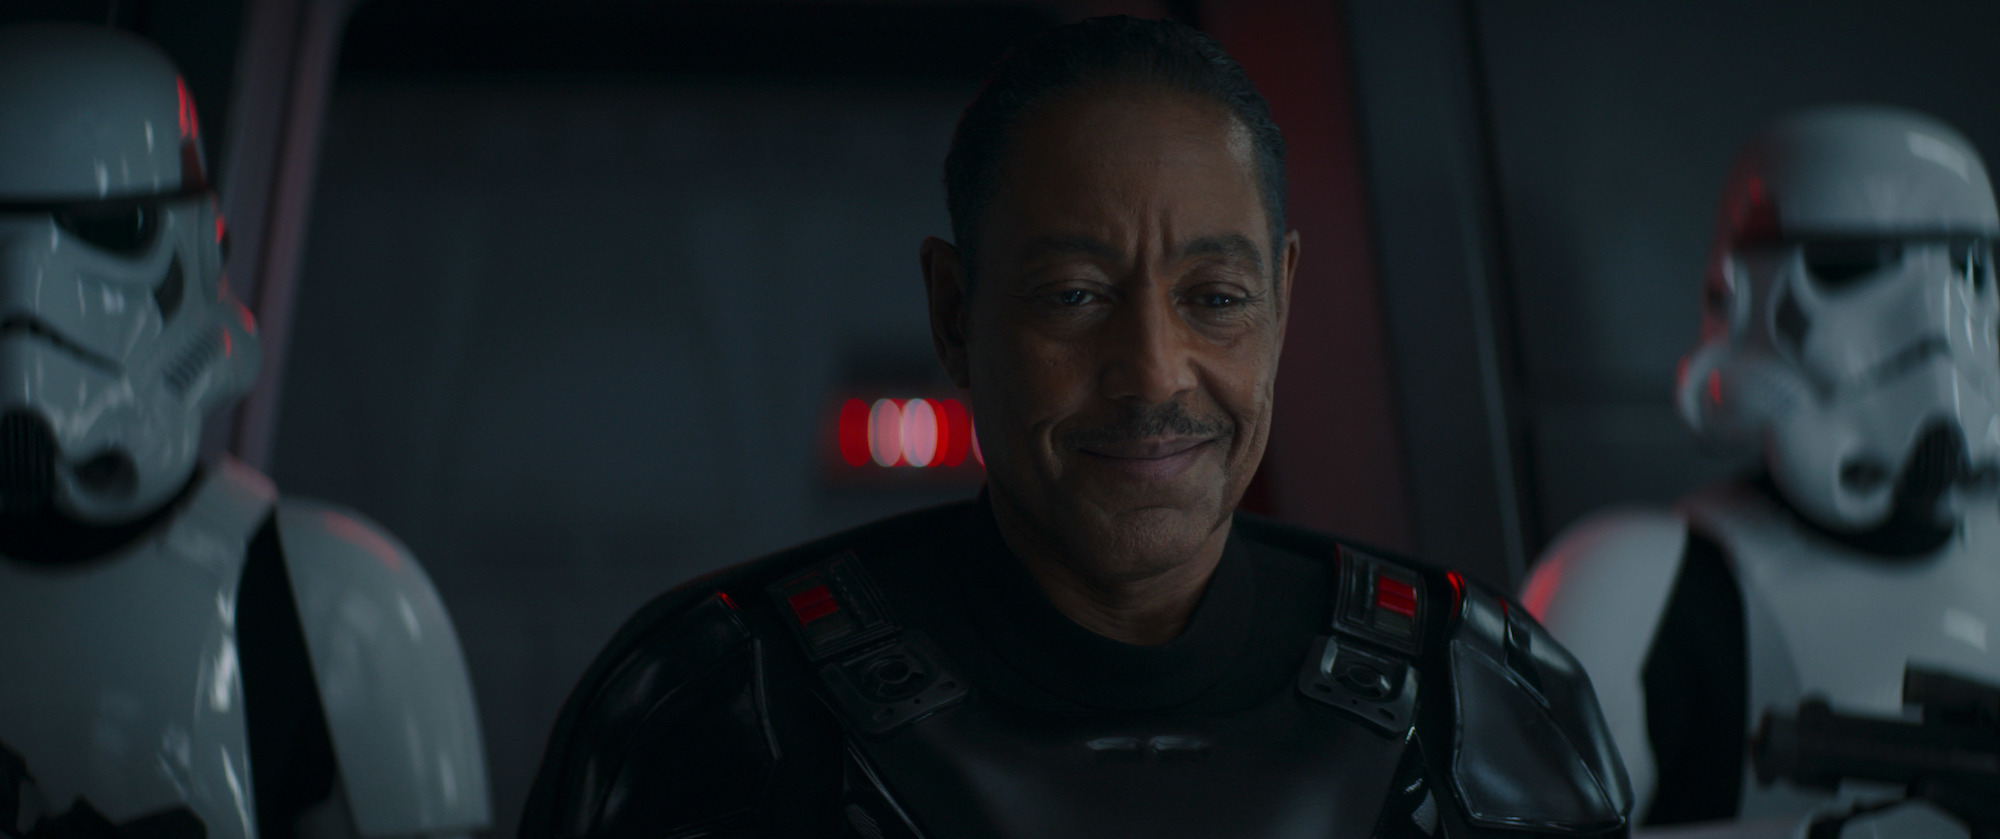 Moff Gideon looks at Grogu in shackles in 'The Mandalorian'